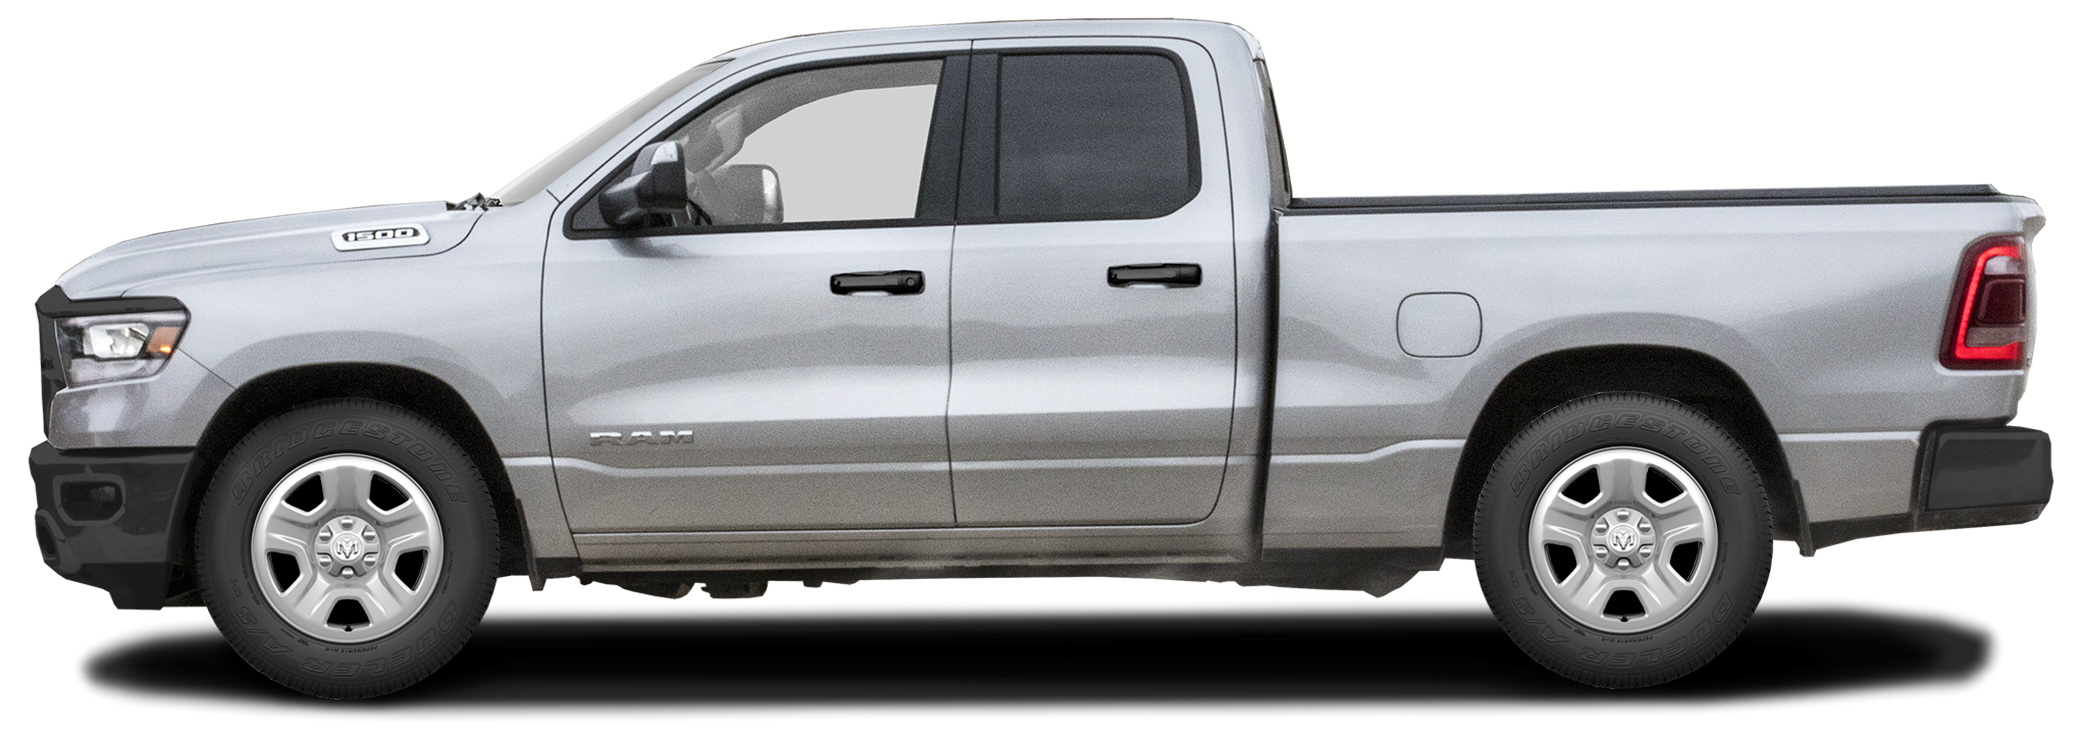 2020 Ram All-New 1500 Truck Tradesman